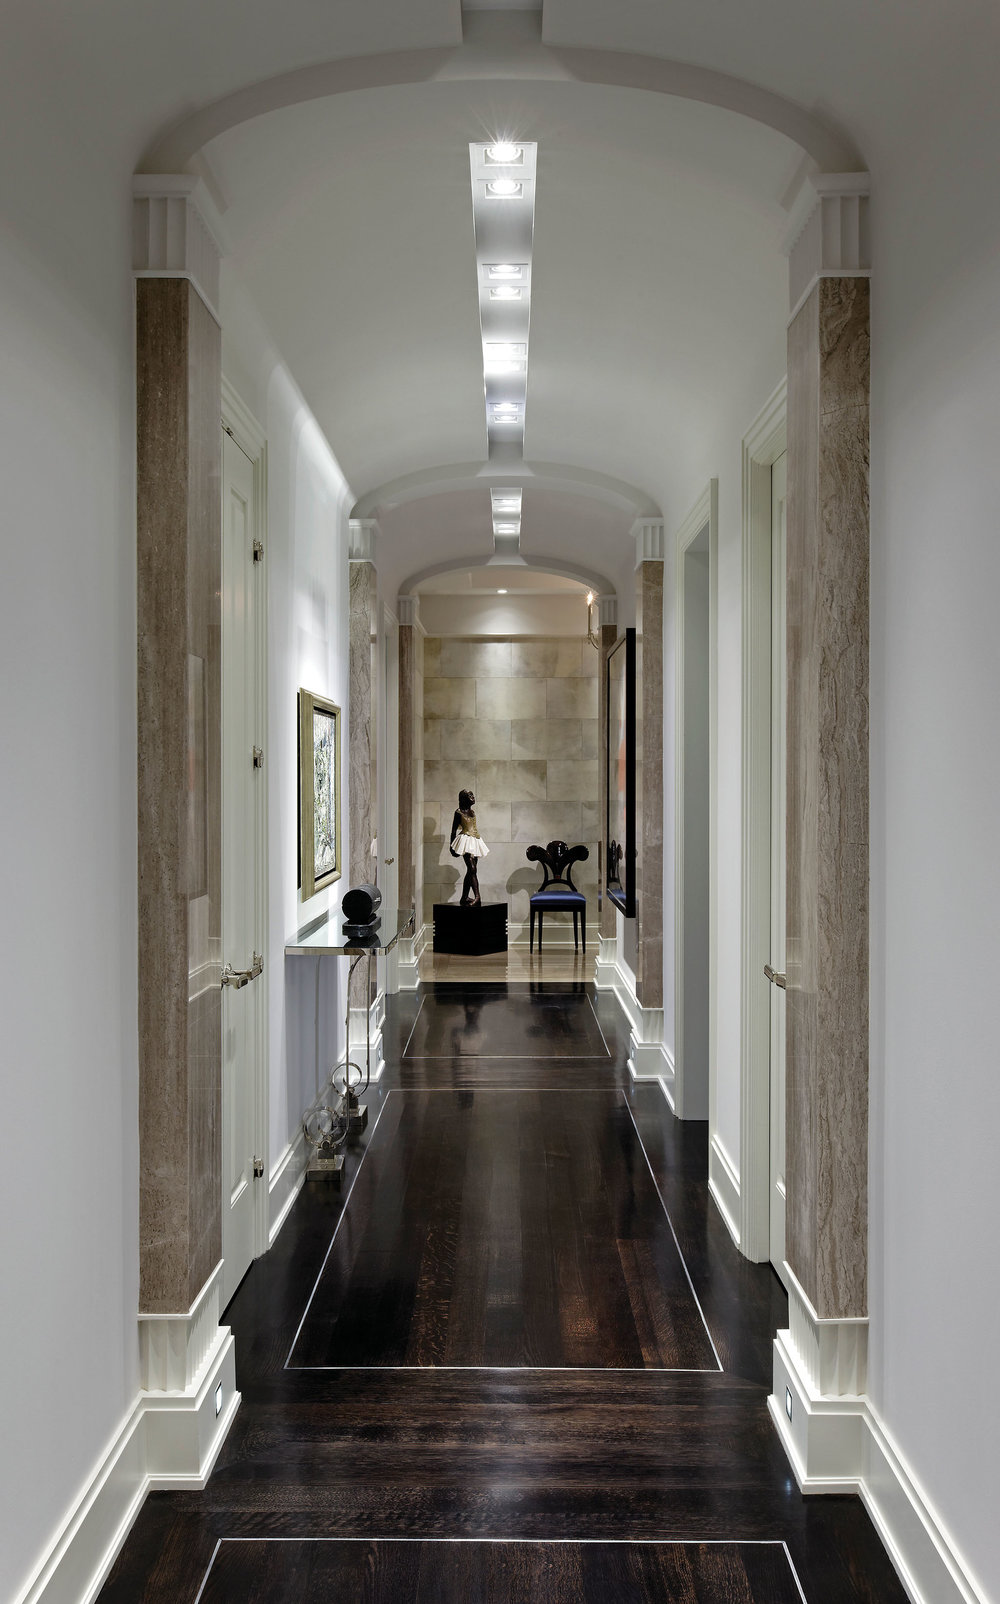 The entry hall features stone slab pilasters.